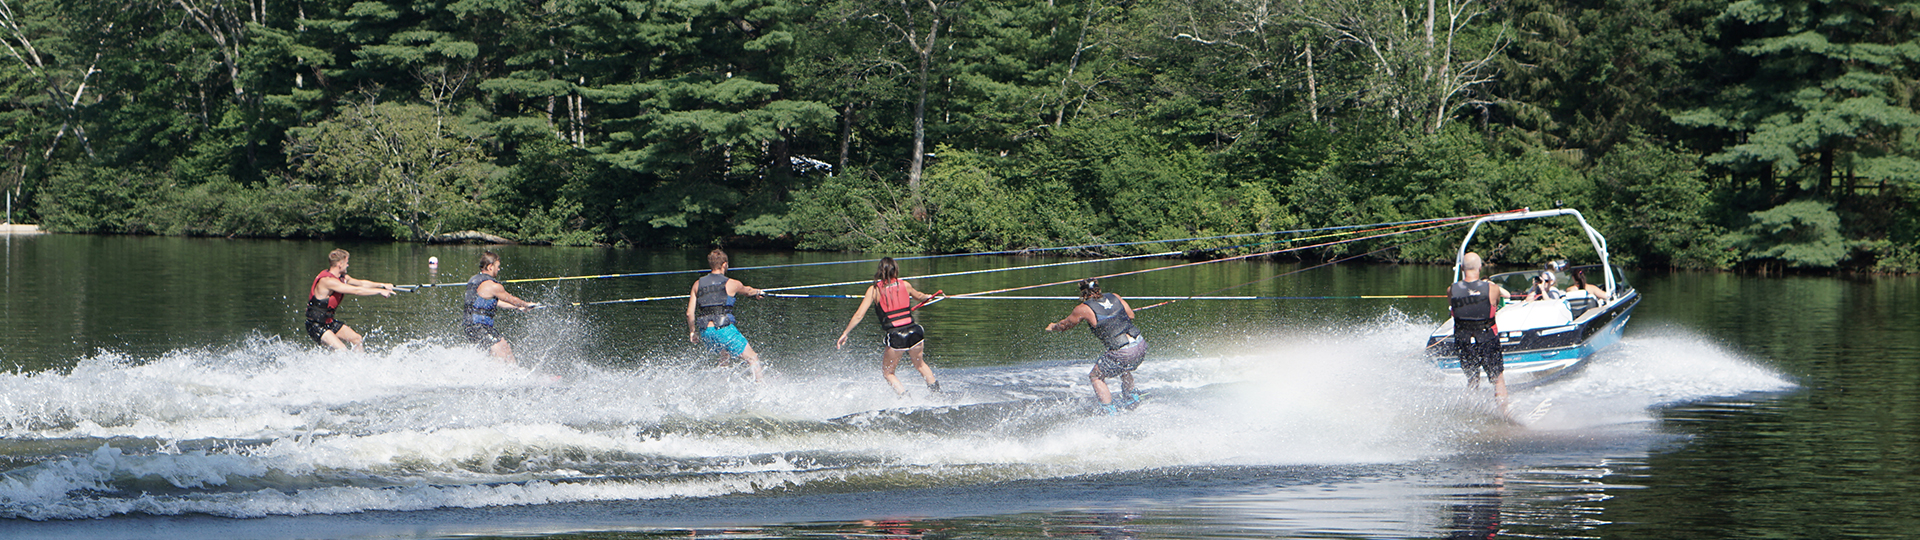 Sail, Drive Boats and tow along Waterskiiers and Wakerboarders!